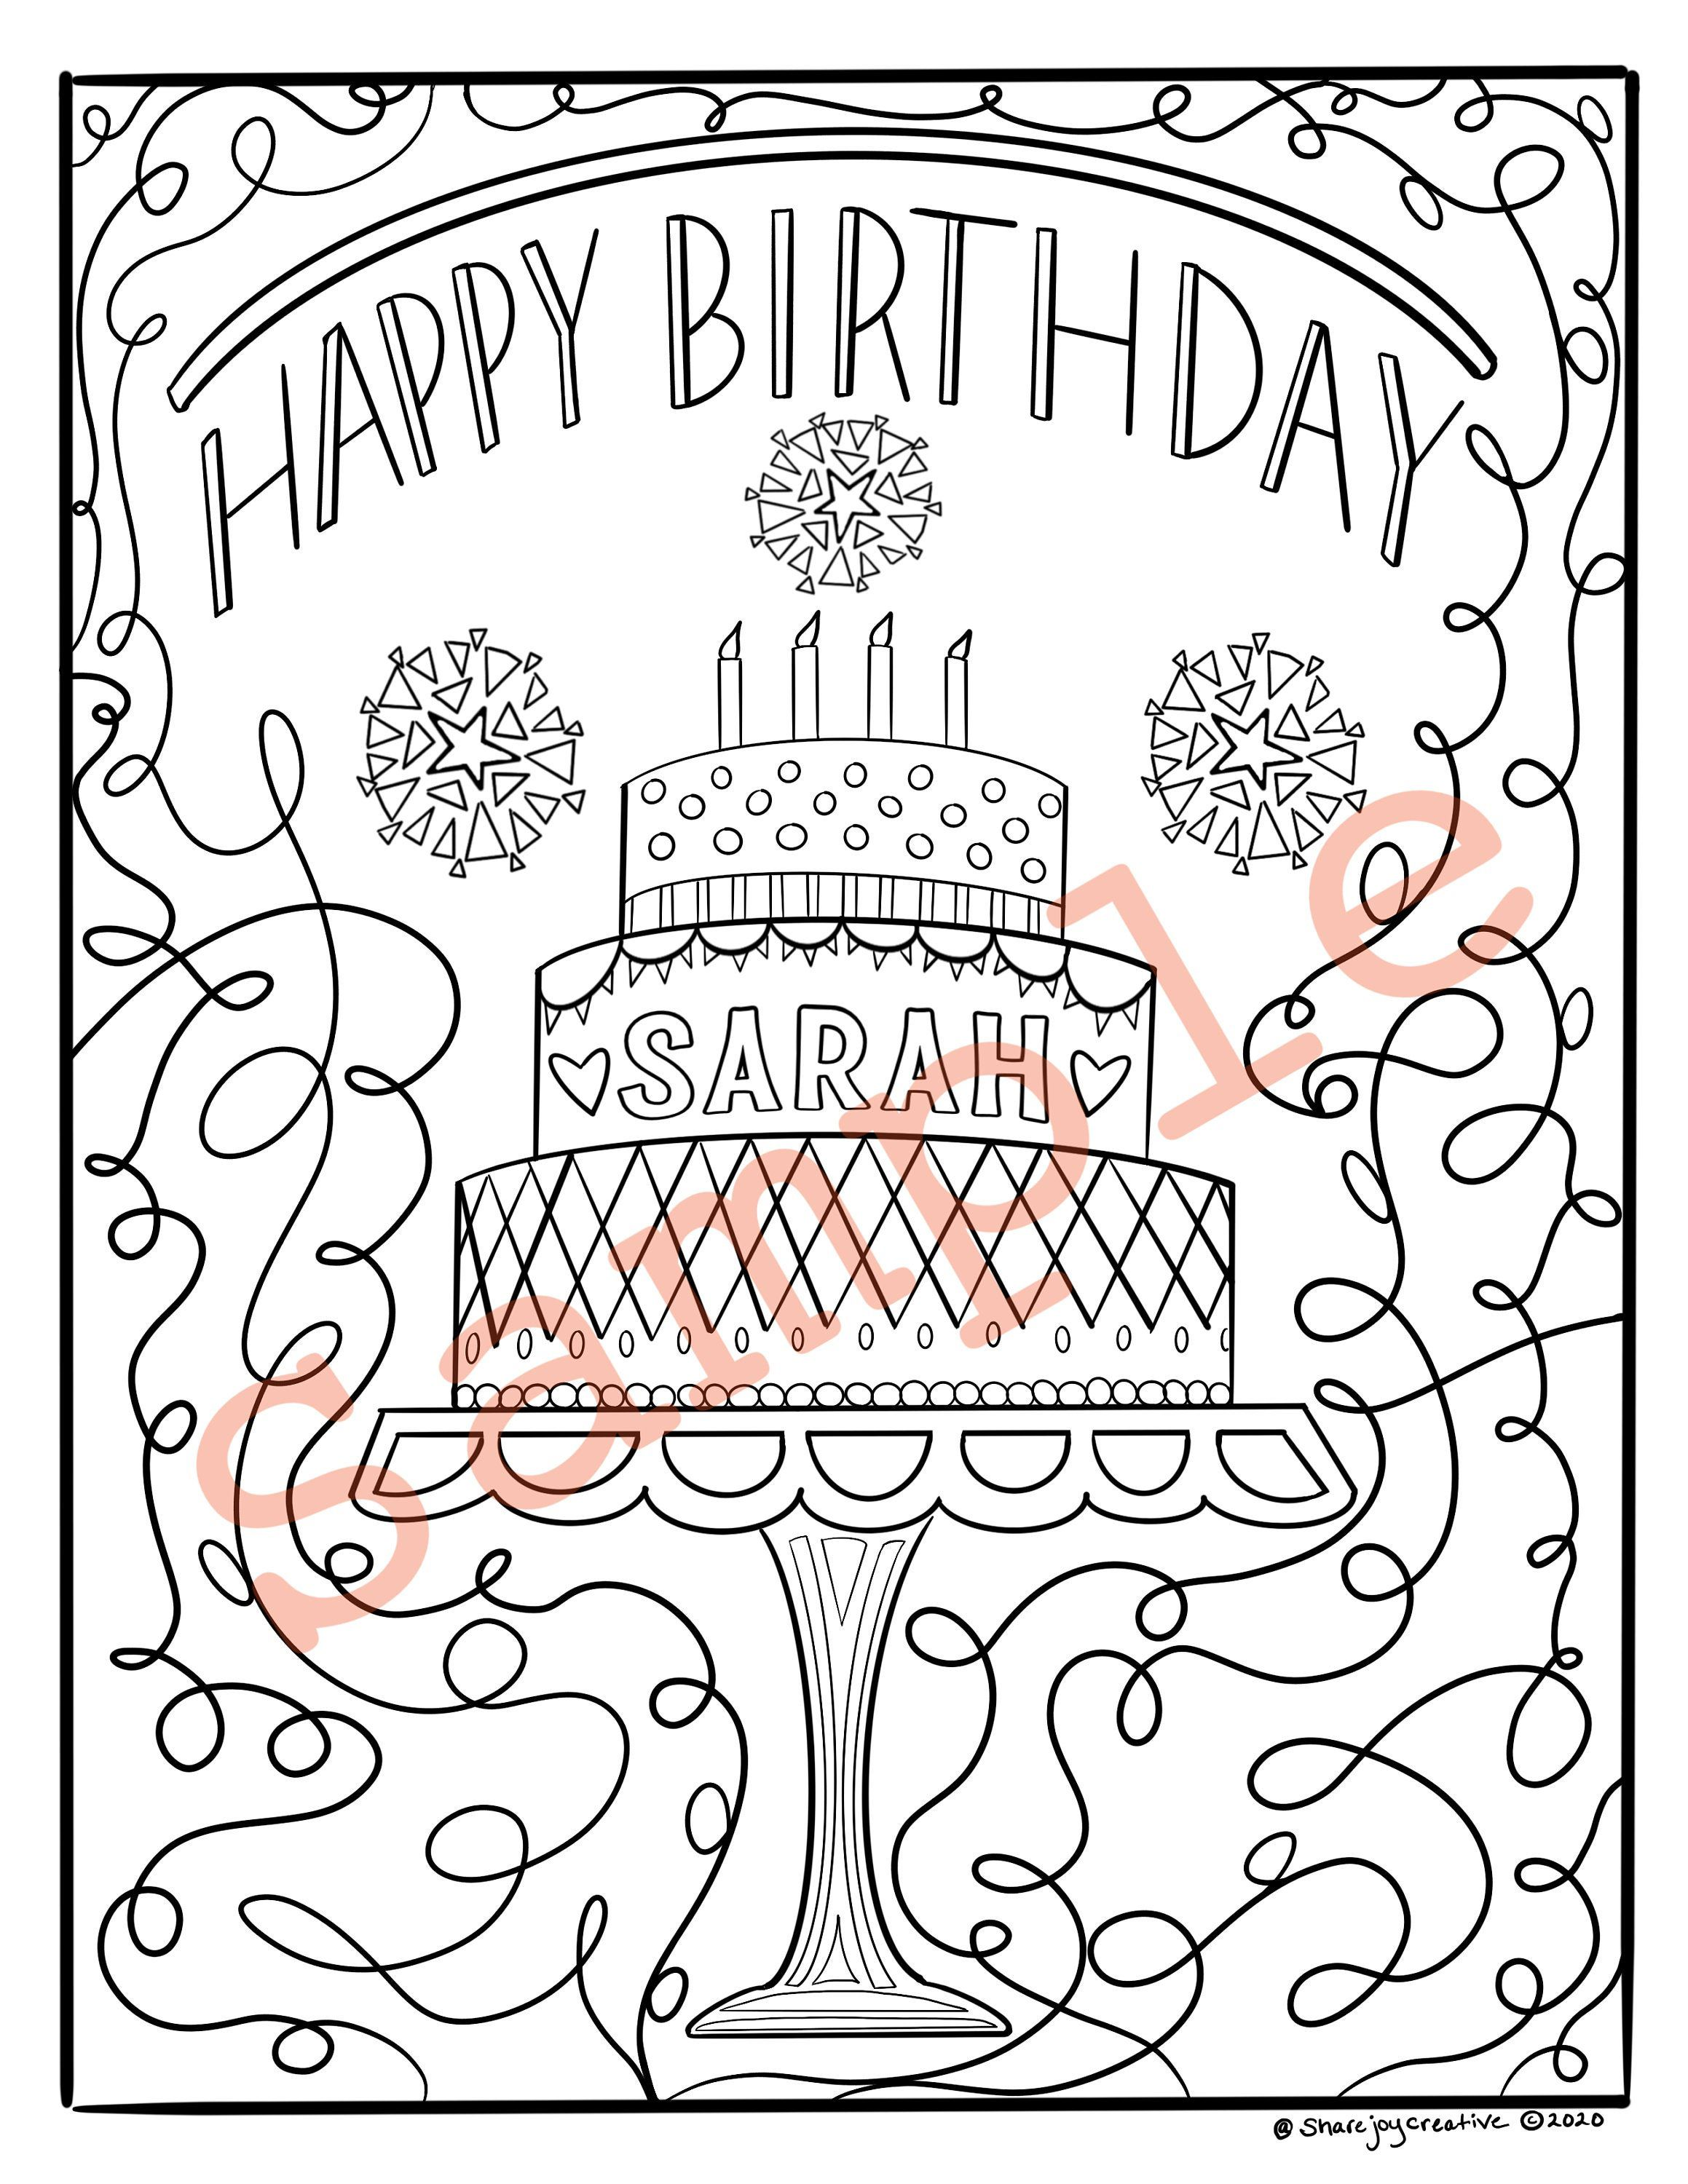 Pin on Coloring Pages, Books and Notes